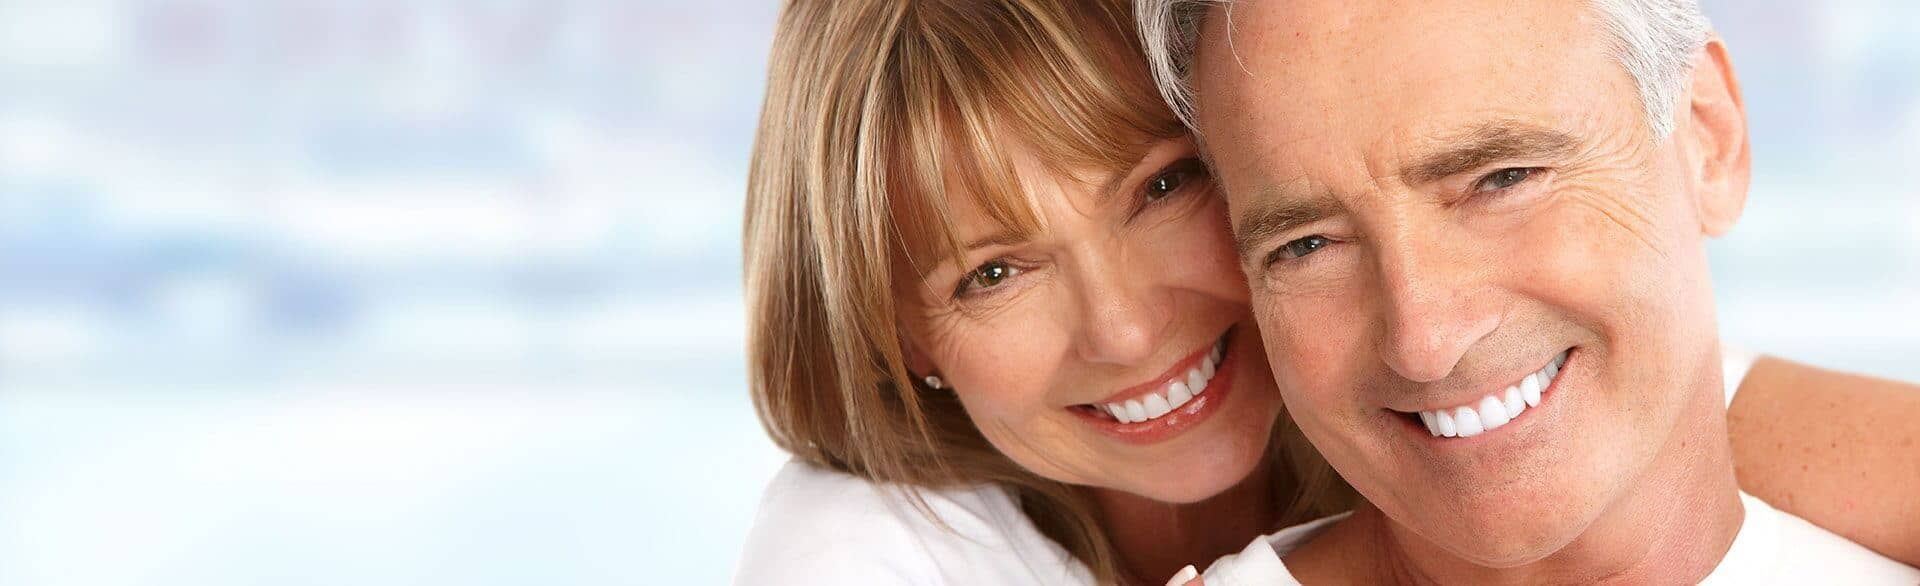 Dental Implants - Amber Hills Dental Henderson, NV